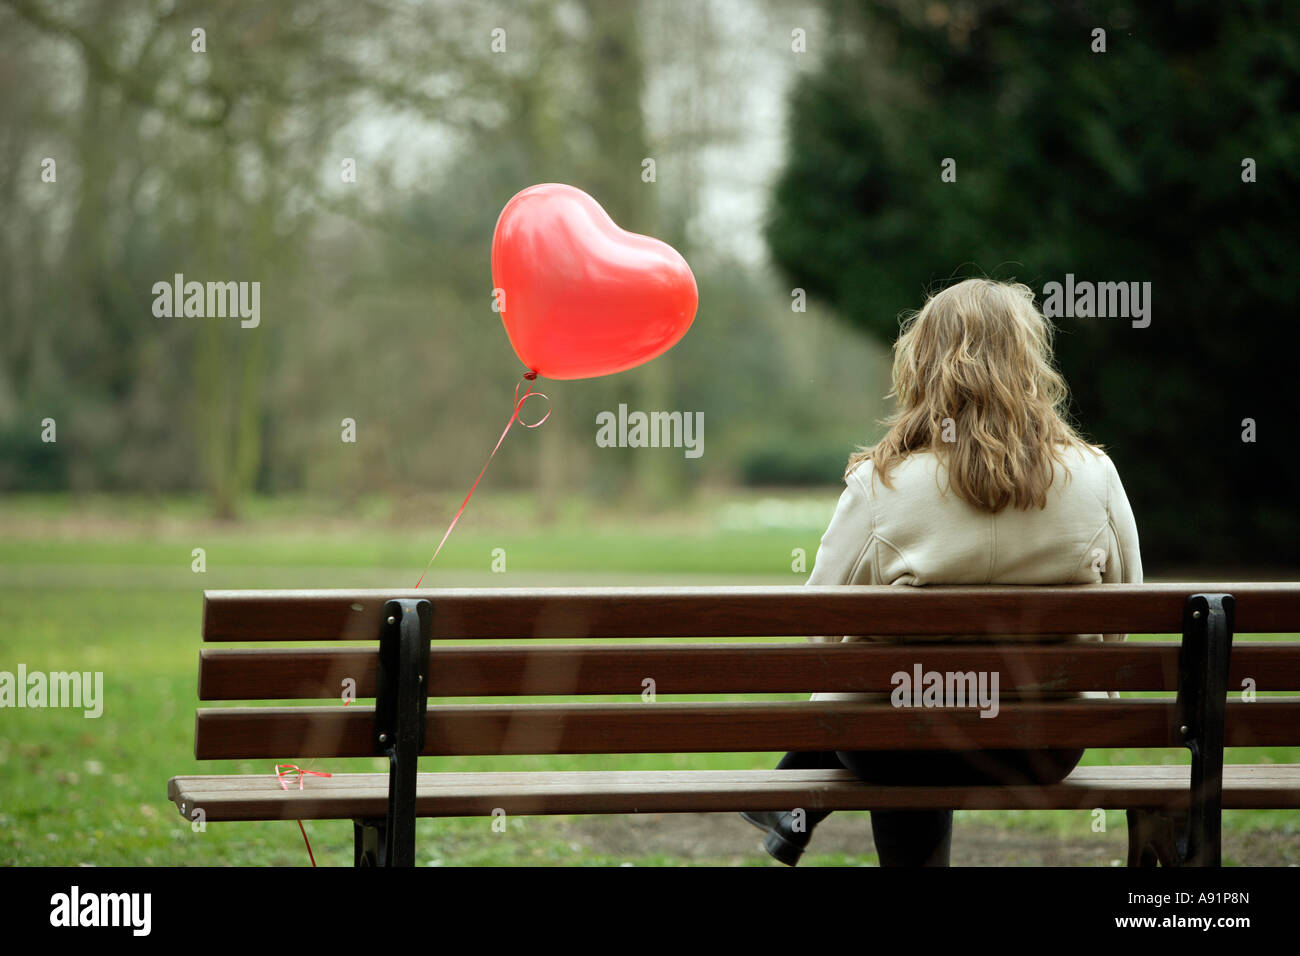 A young woman sits alone on a park bench - Stock Image